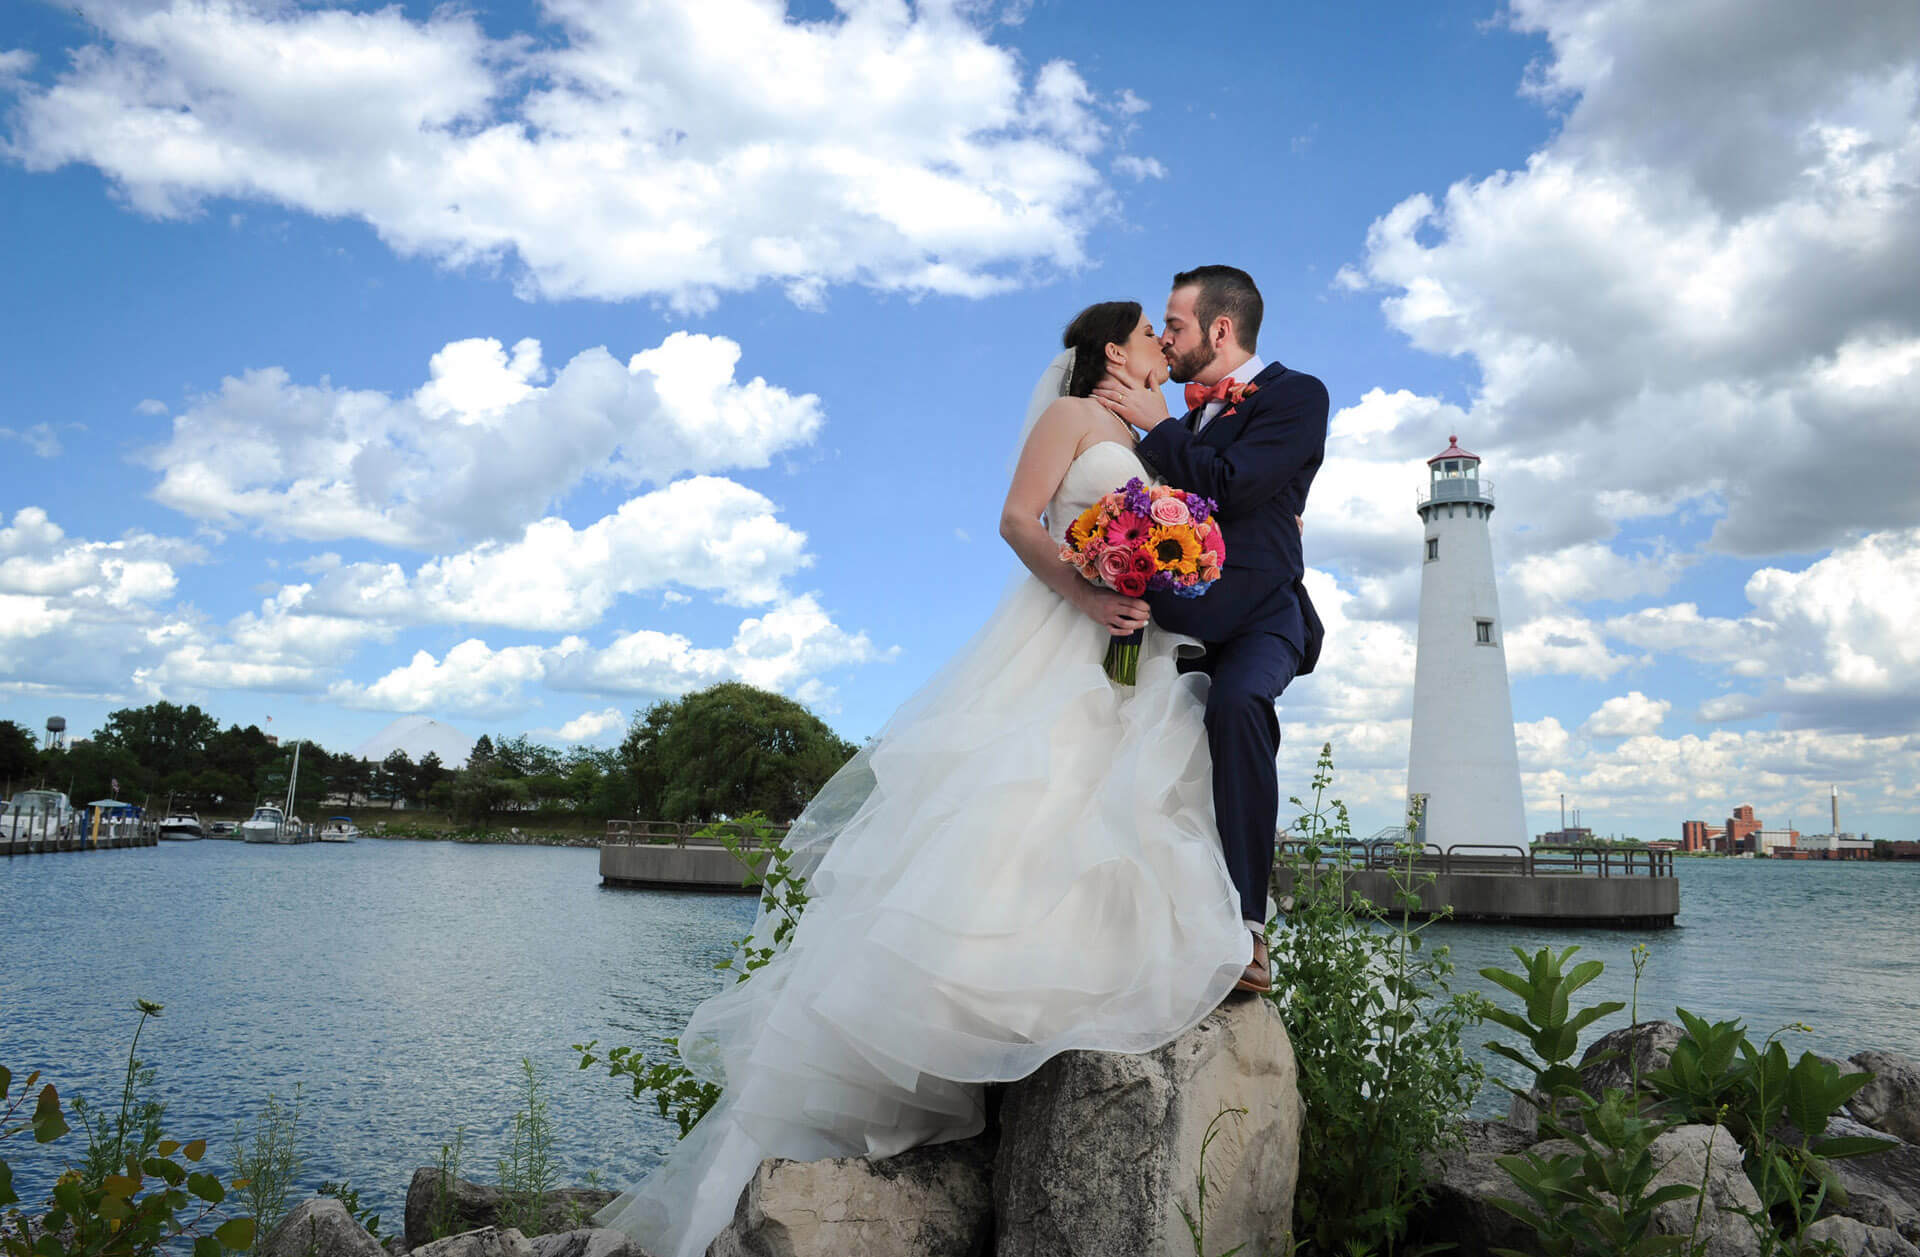 The bride and groom smooch at a lighthouse after their wedding in Detroit, Michigan.